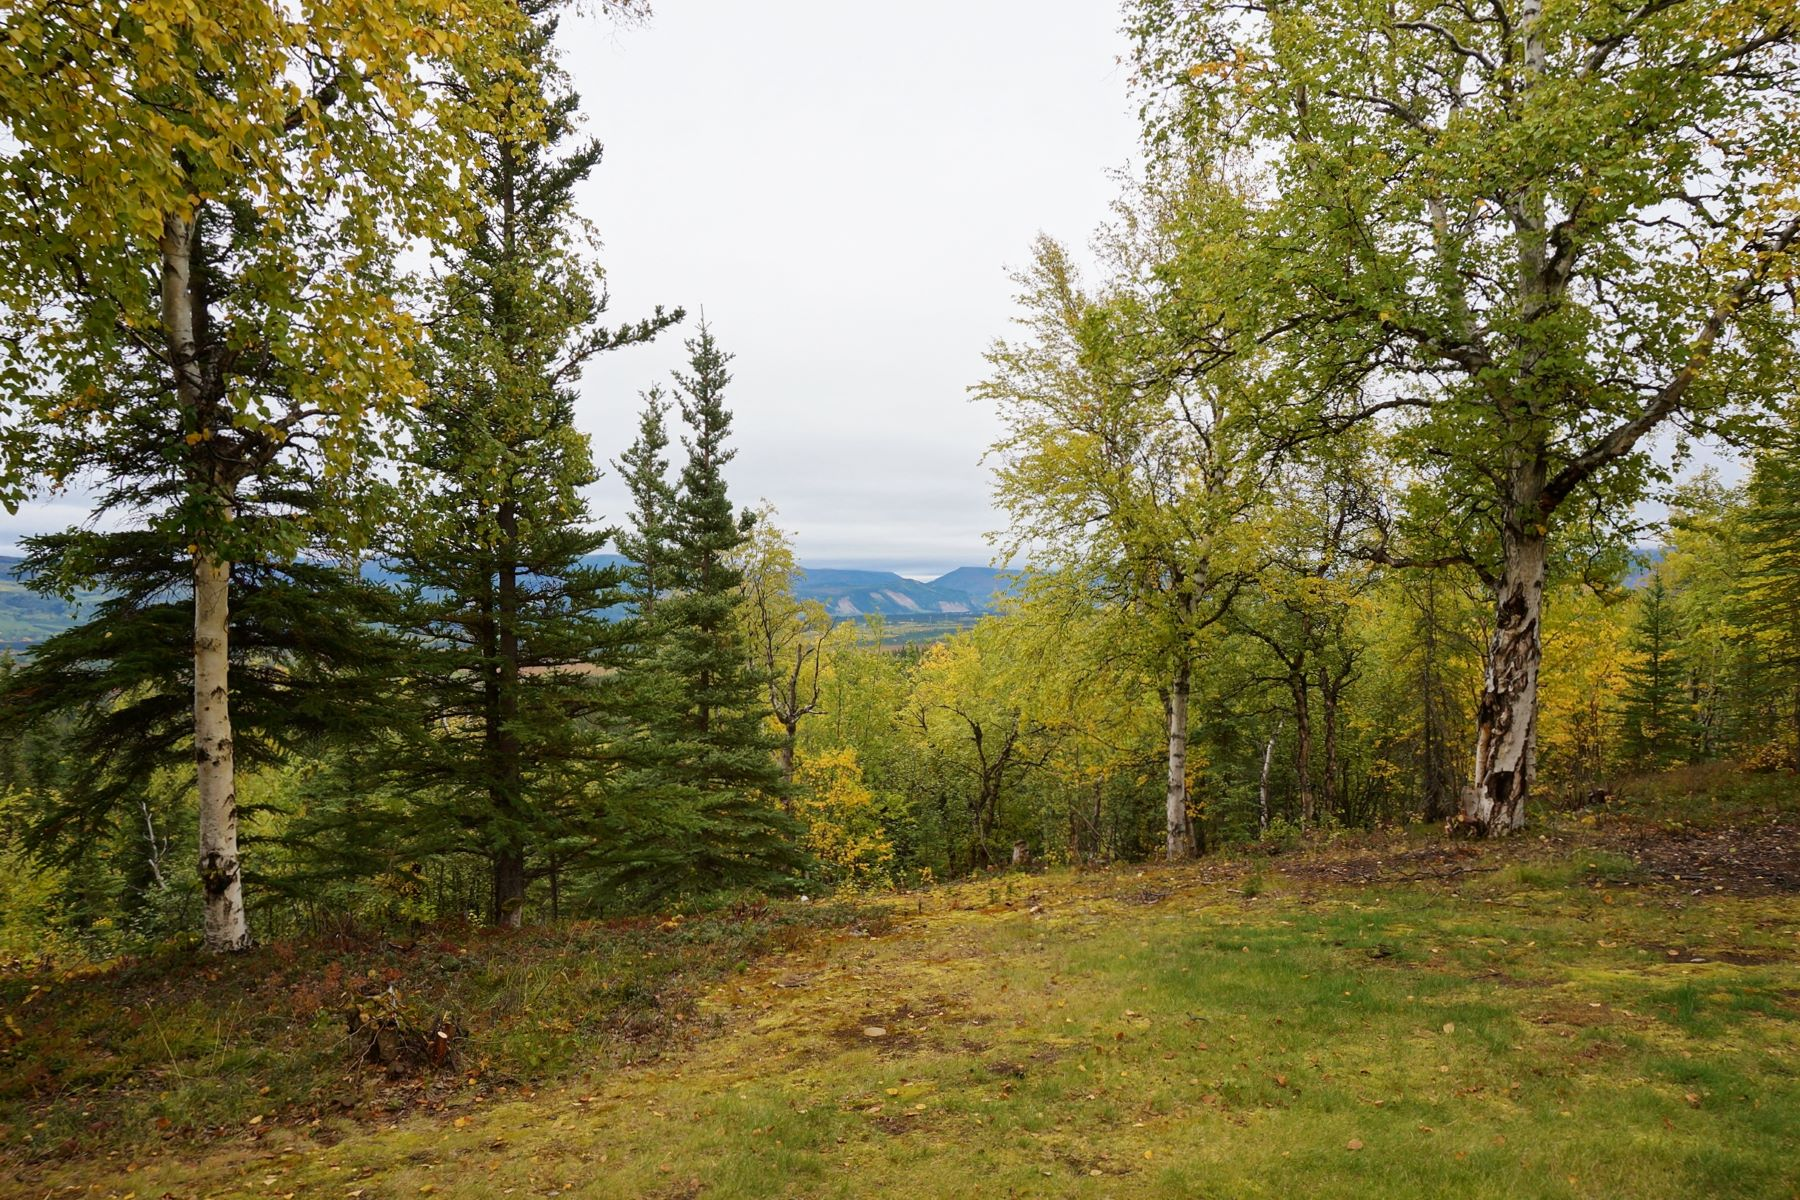 Land for Sale at Lot 4 Ridgetop Cabins Road Ridgetop Subdivision Healy, Alaska 99743 United States